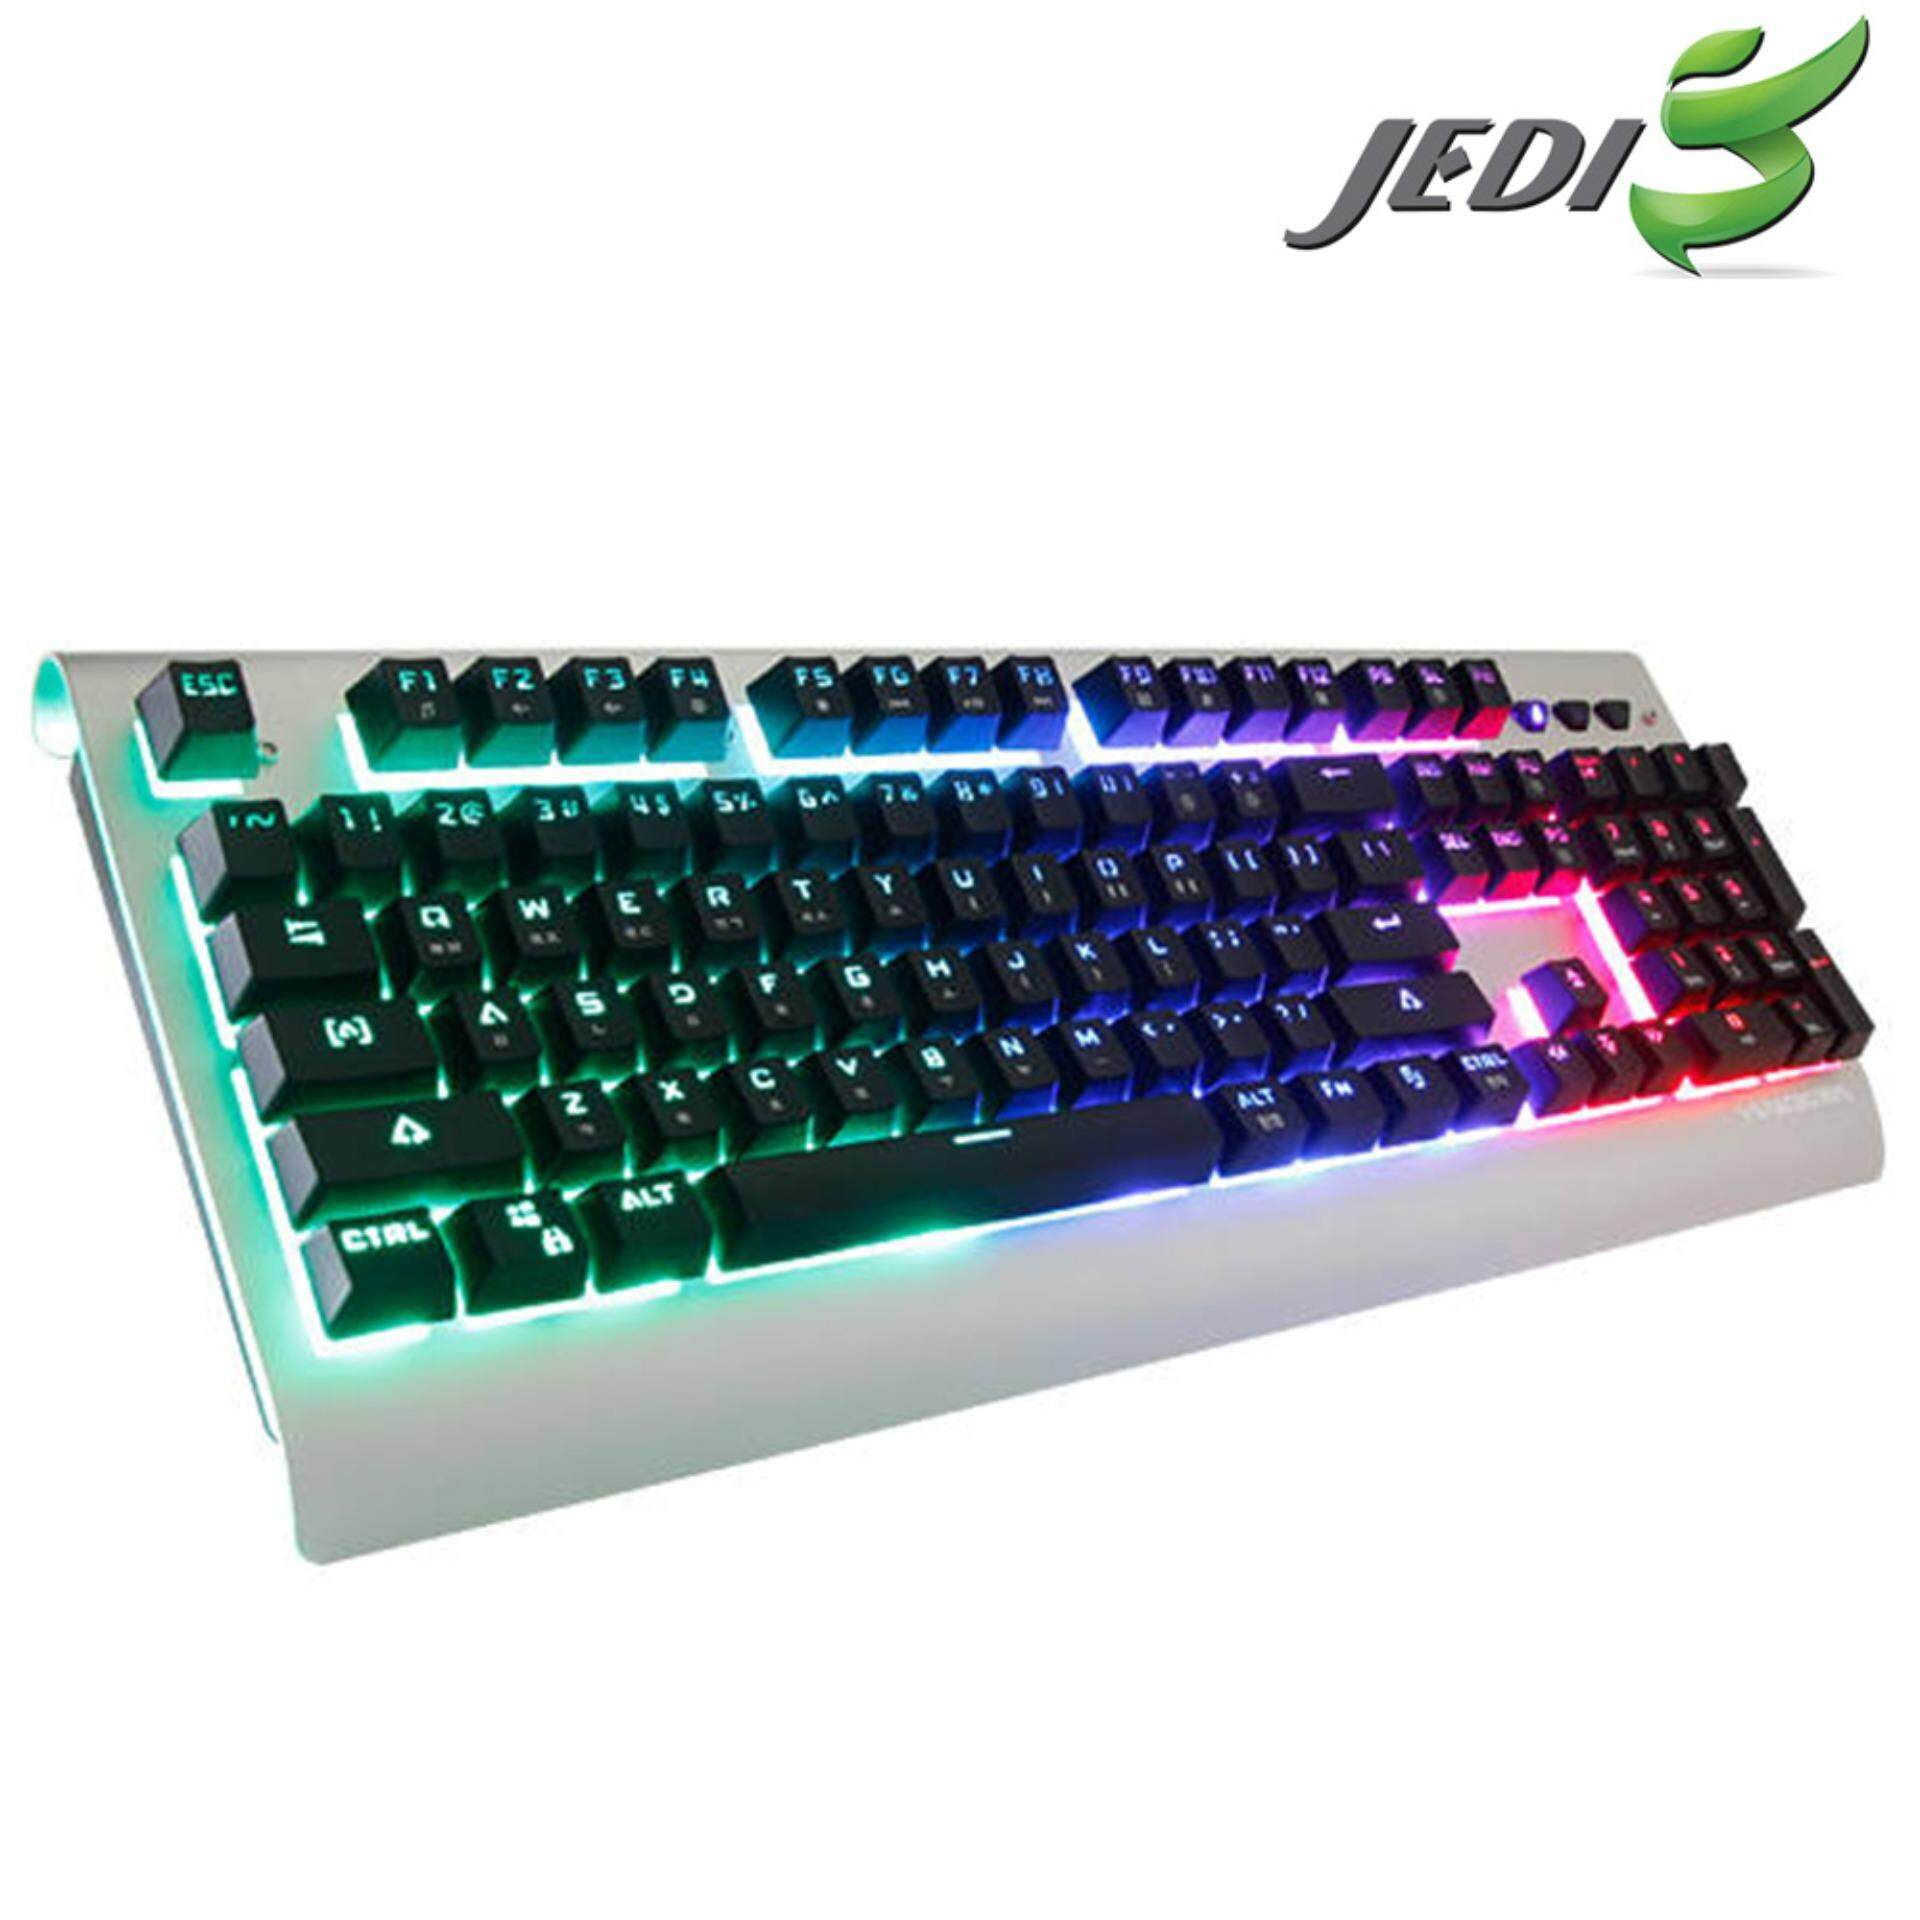 Edollar Aurora Waterproof Gaming Keyboard